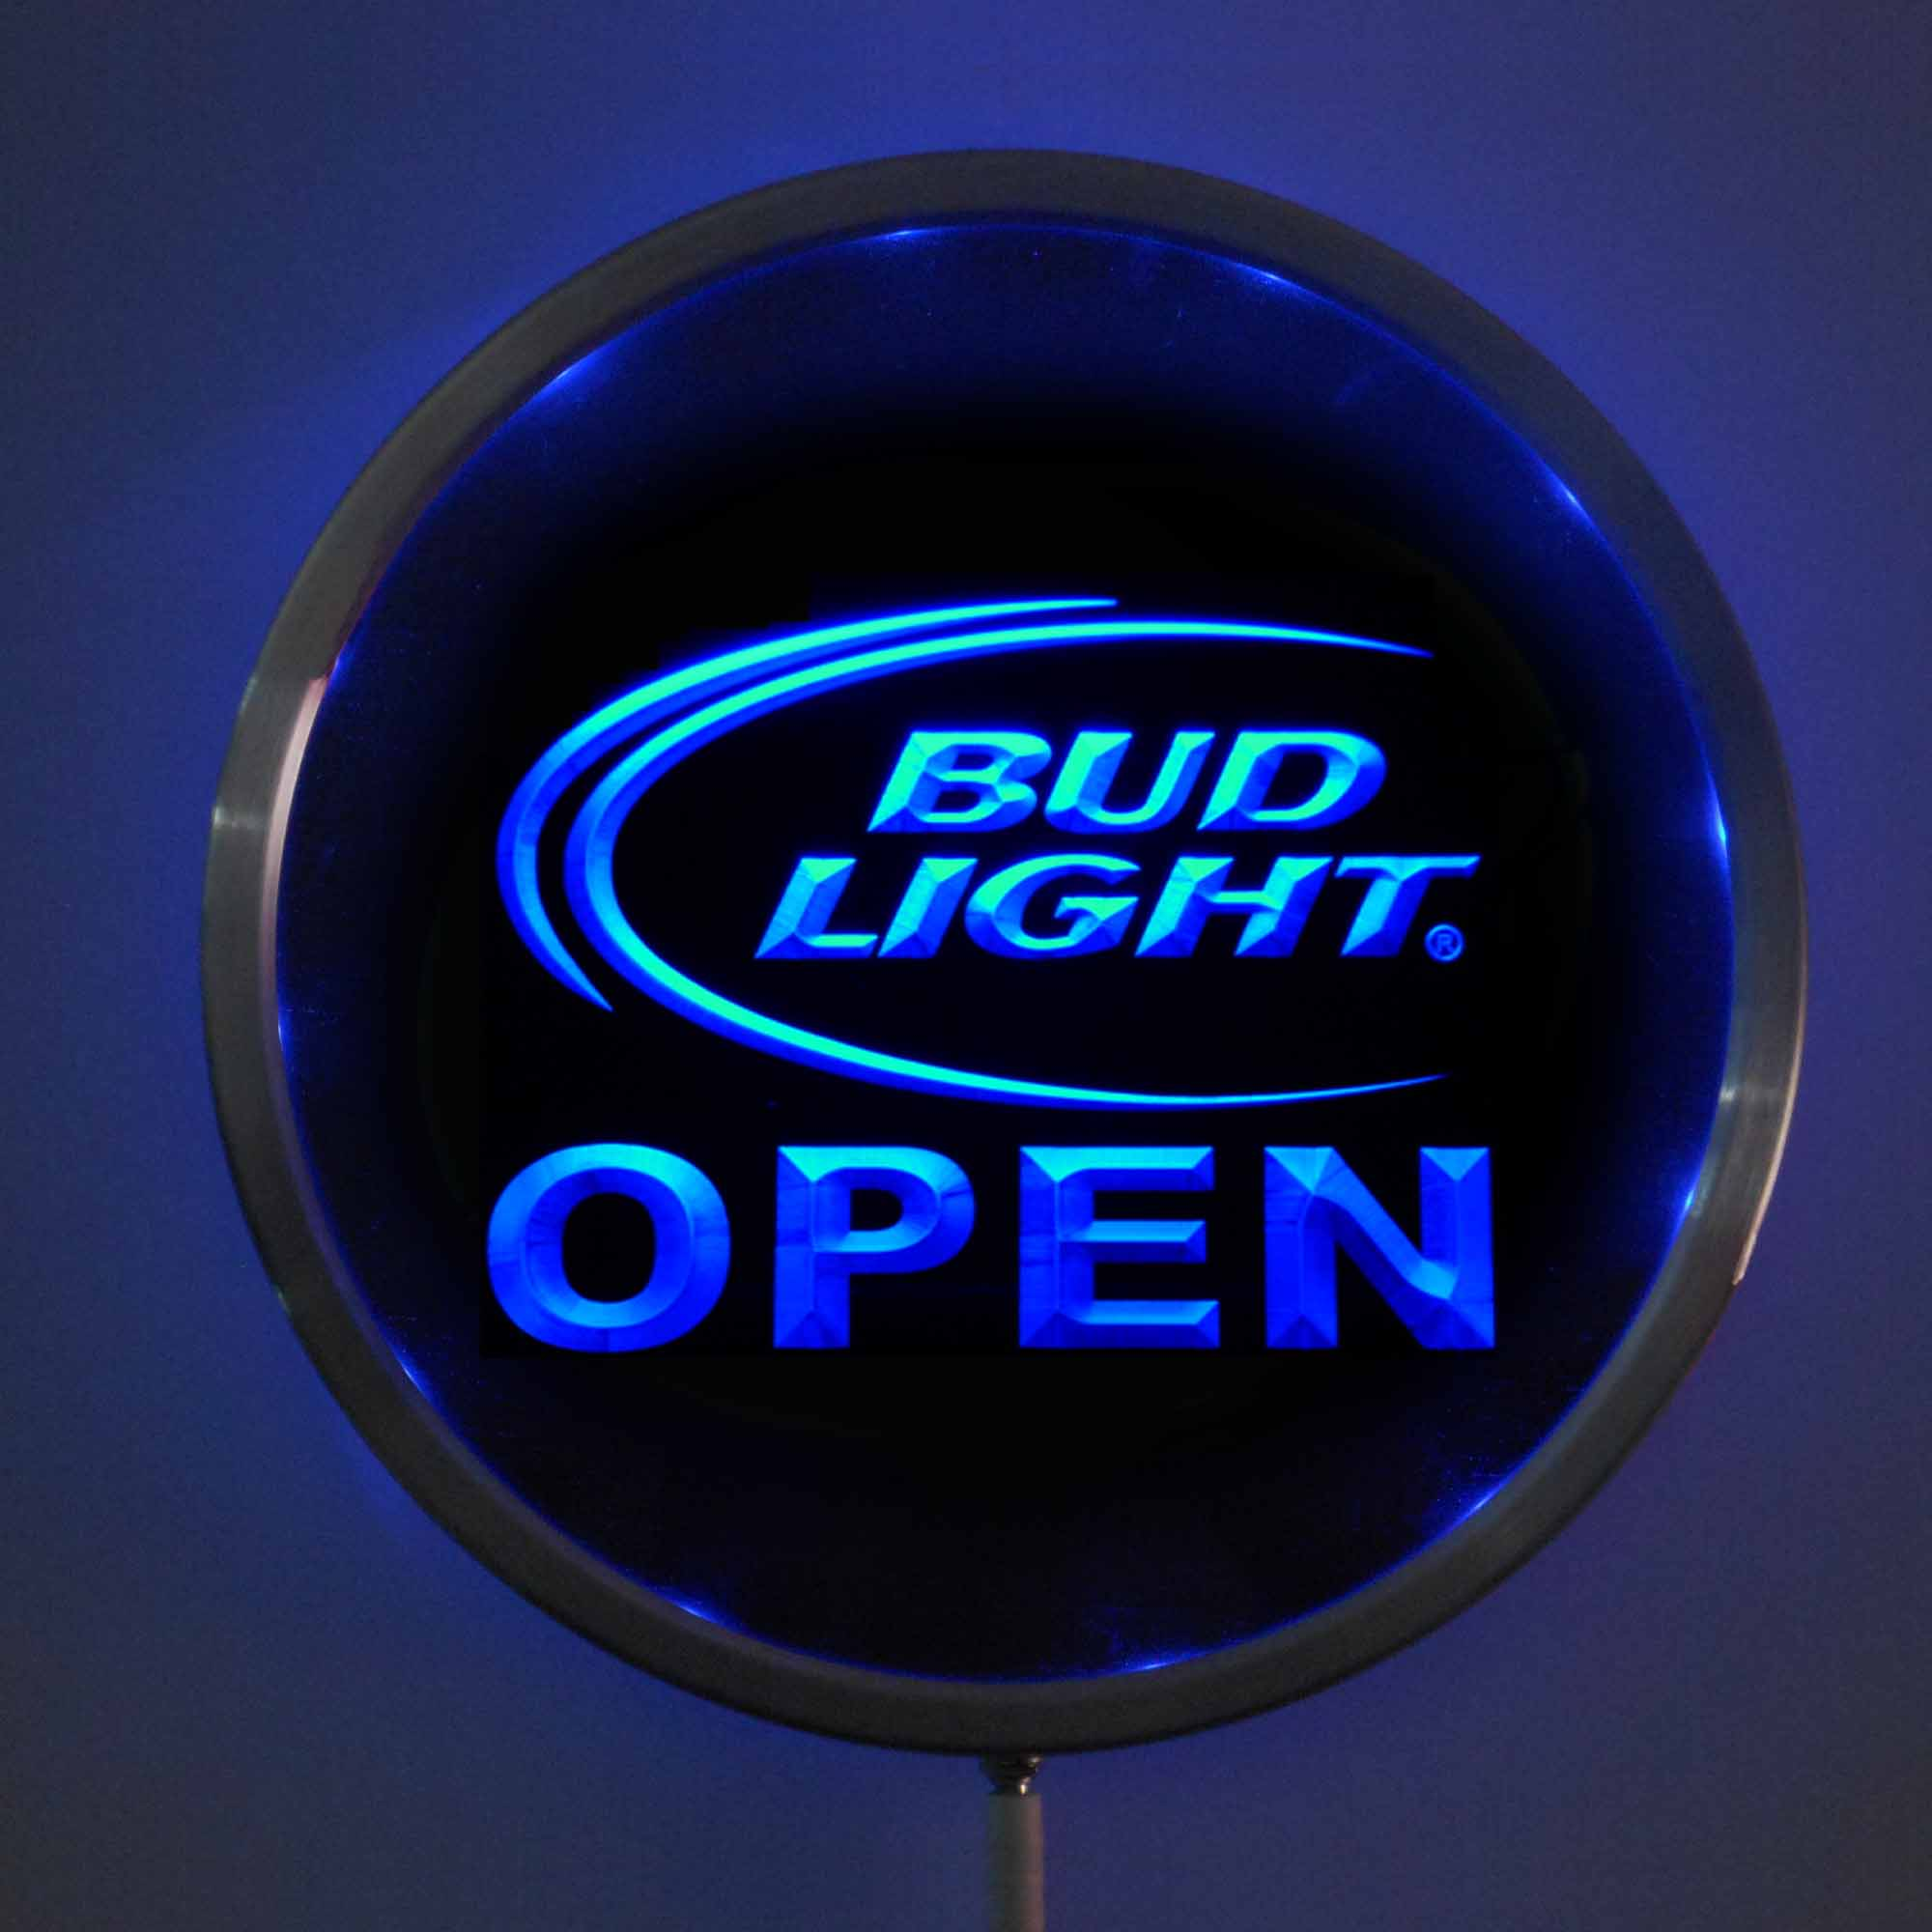 rs-0025 Bud <font><b>Light</b></font> OPEN LED Neon Round Signs 25cm/ 10 Inch - Bar Sign with RGB Multi-Color Remote Wireless Control Function